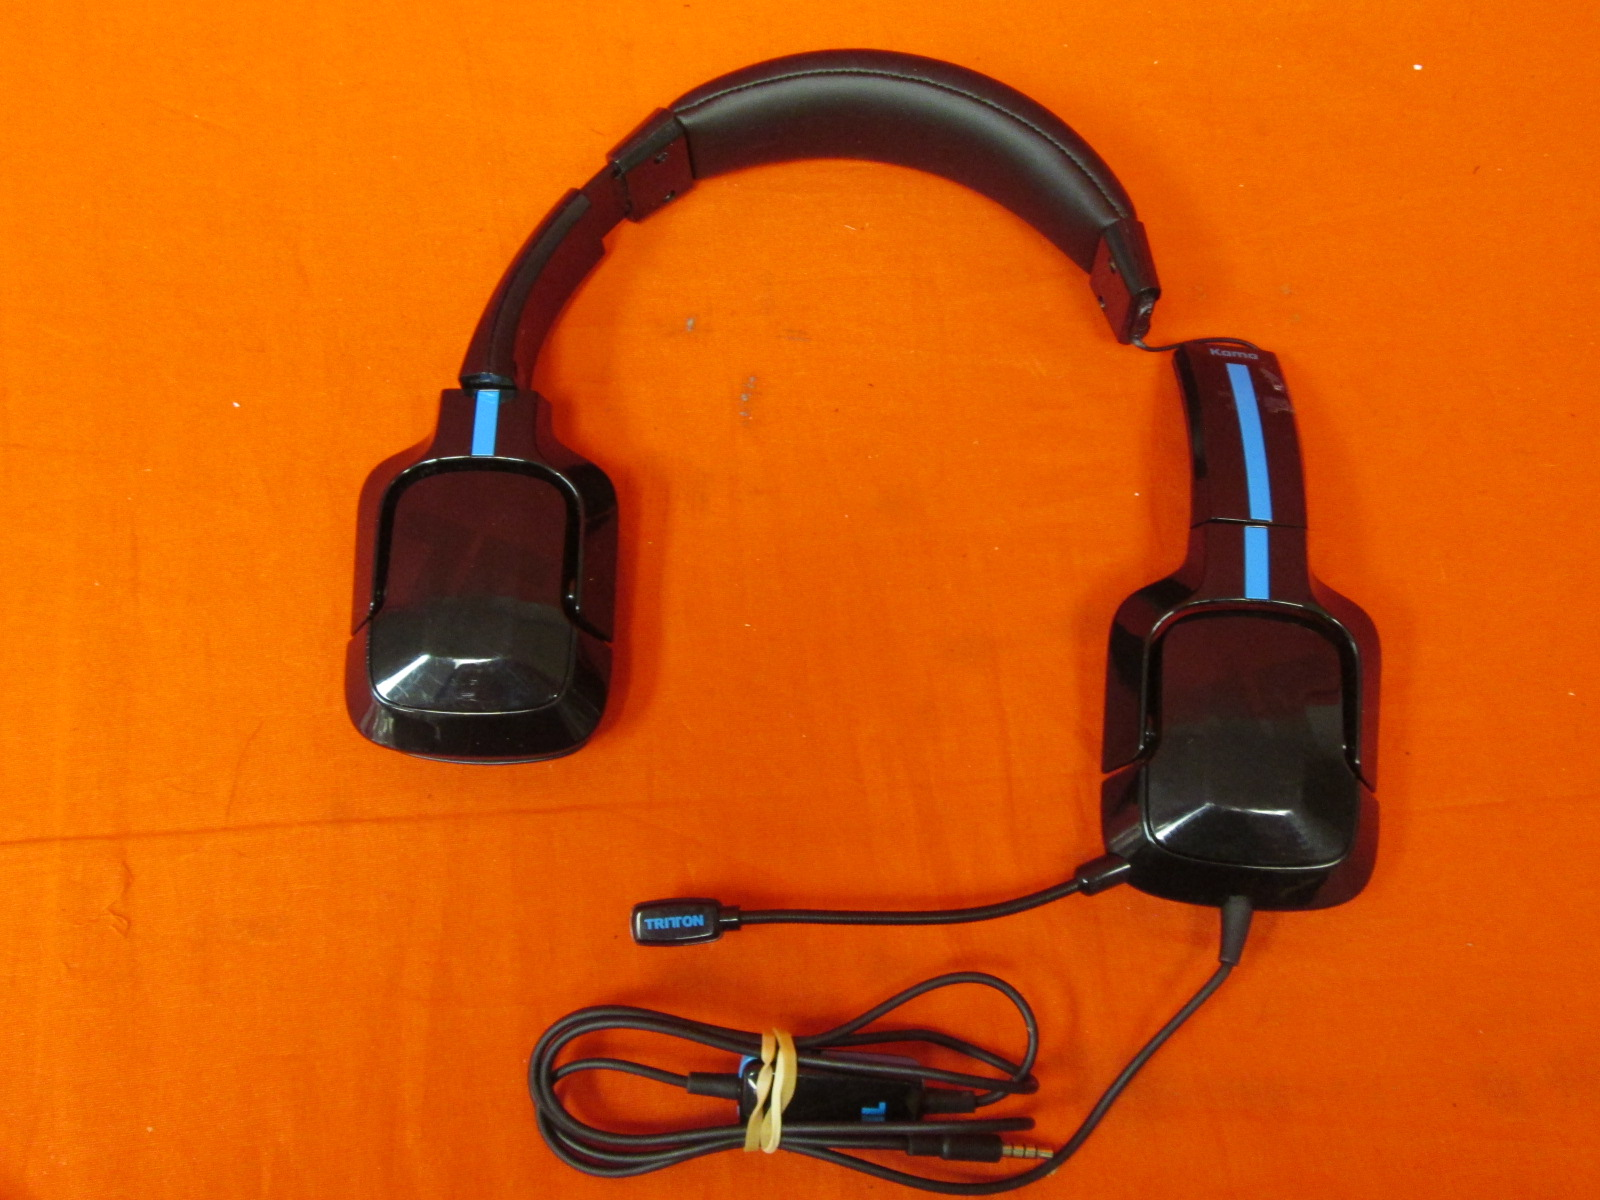 Tritton Kama Stereo Headset For PlayStation 4 Broken